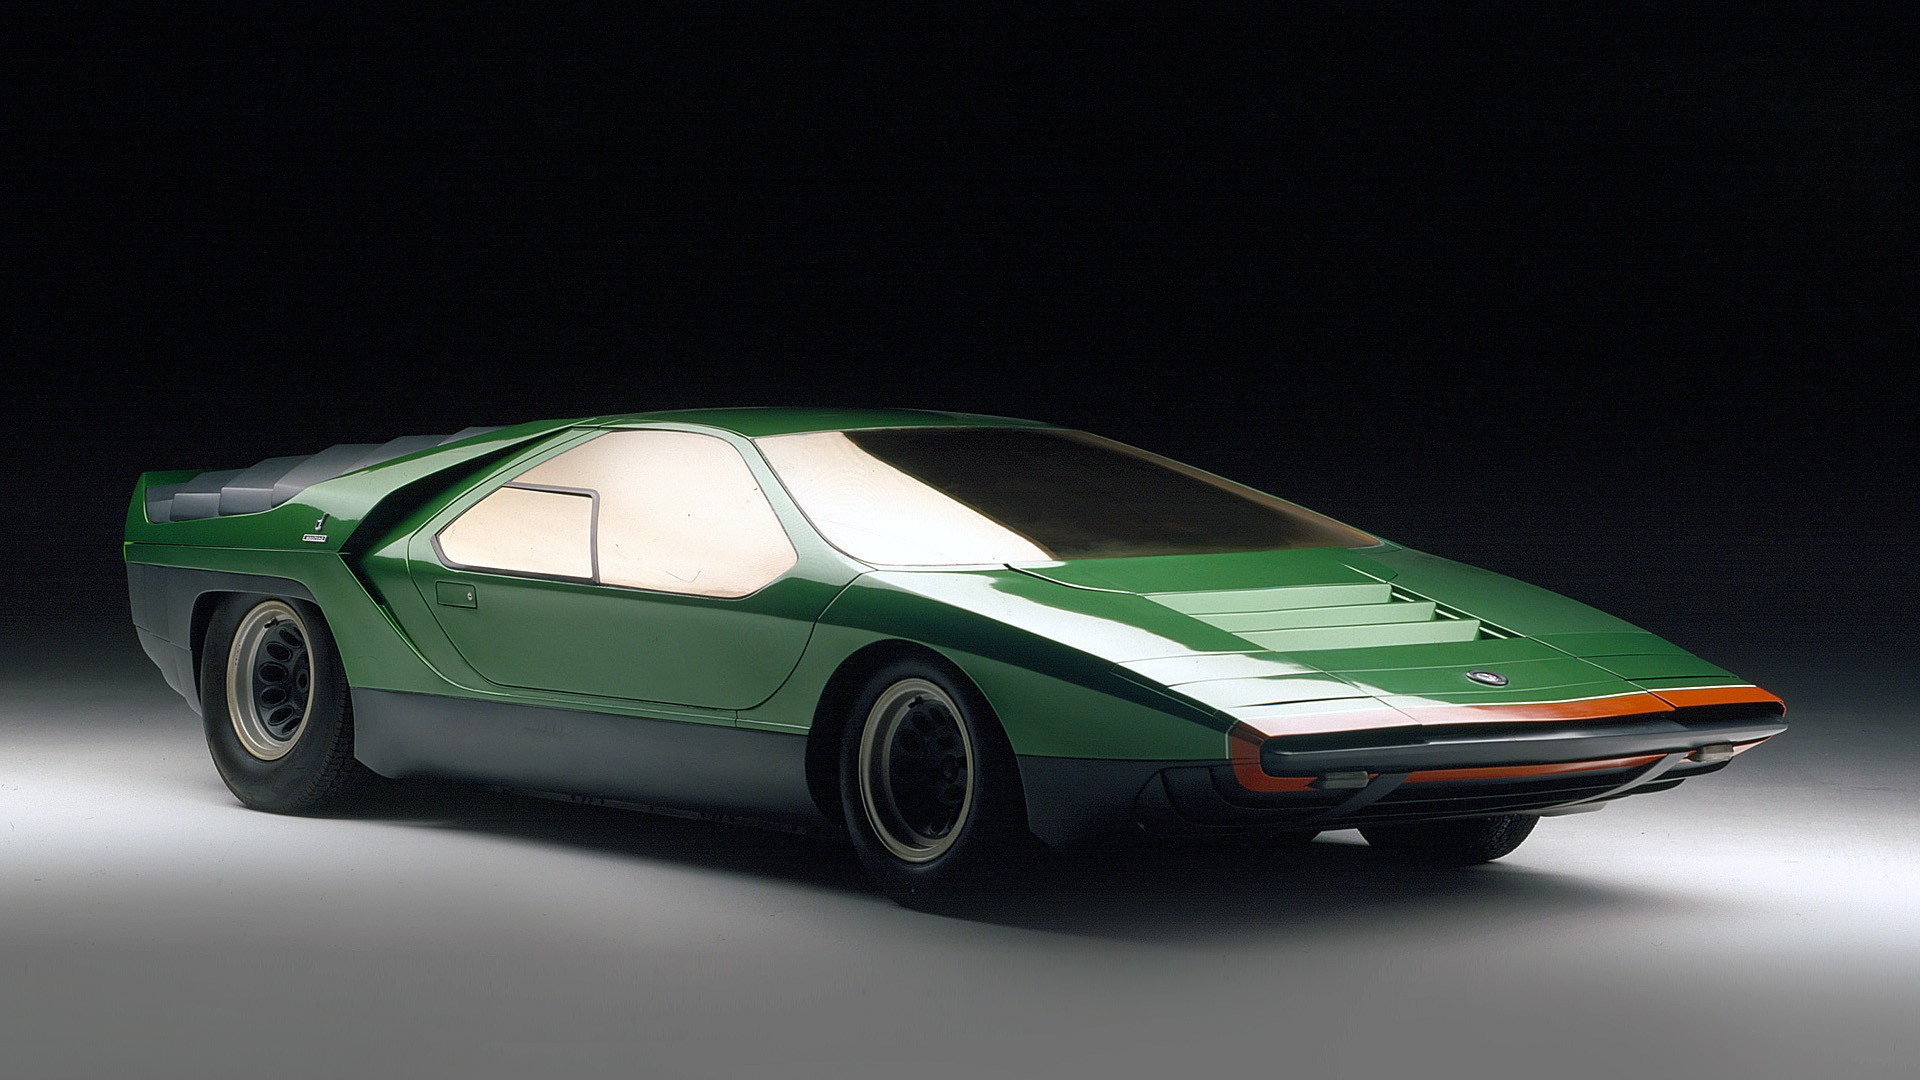 Alfa romeo carabo photo - 4